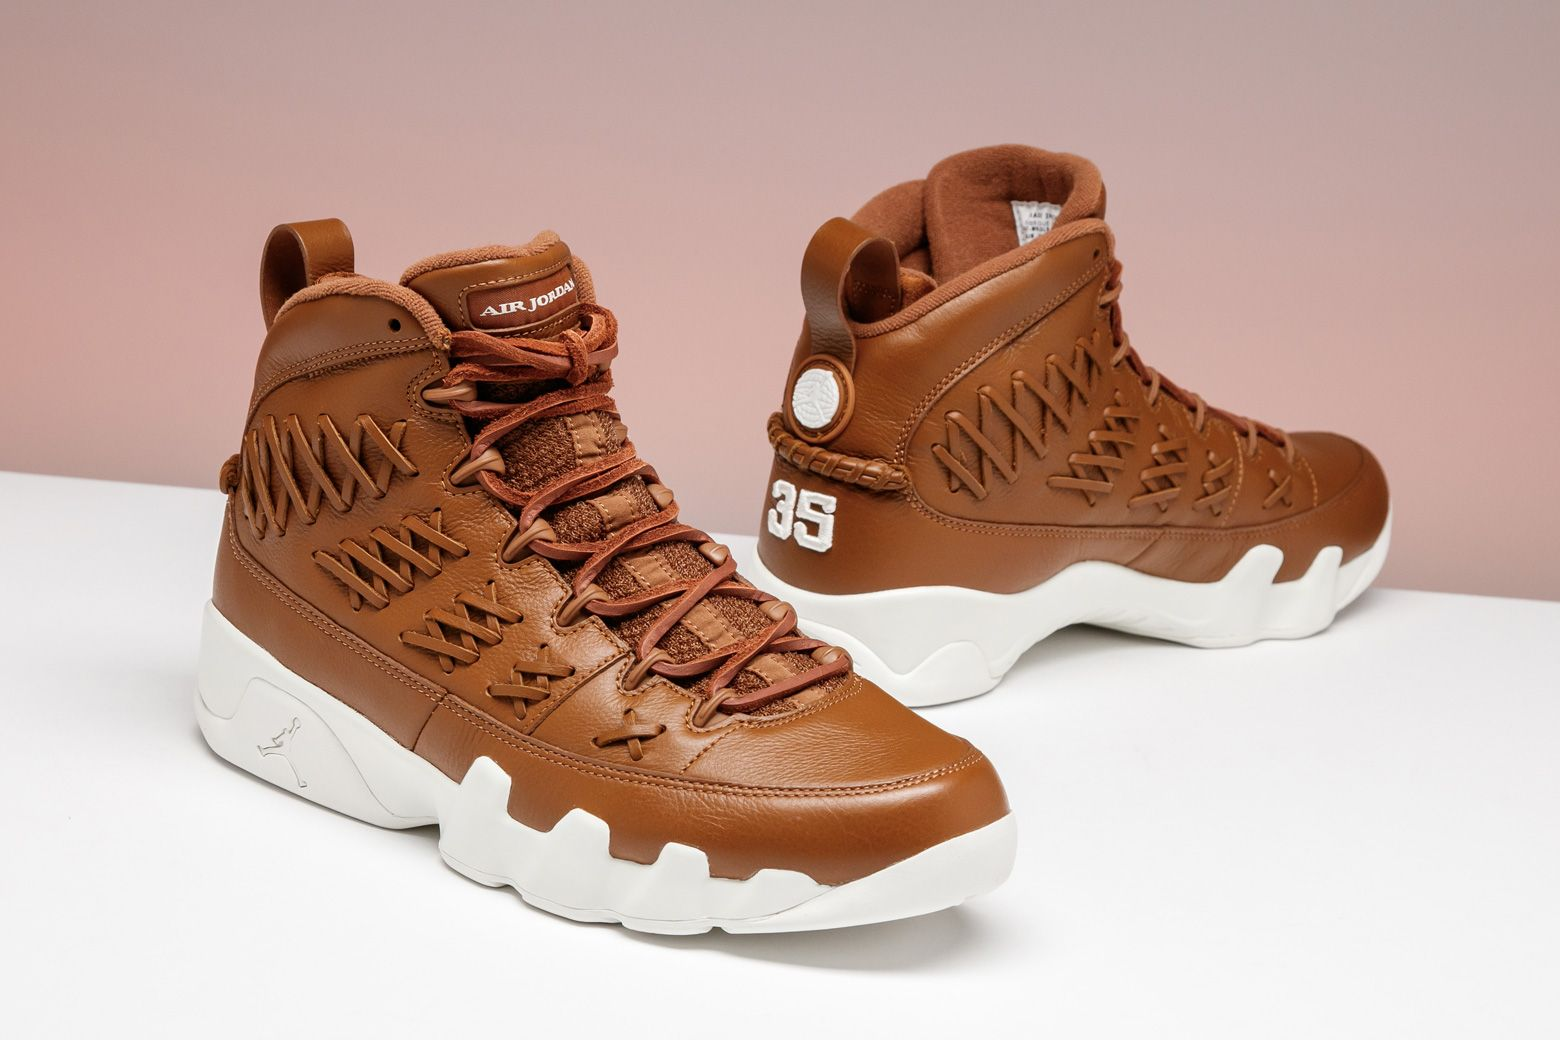 online store 80507 2b143 MJ s short stint in the minor leagues inspired this Air Jordan 9 Retro,  designed with the baseball glove in mind.